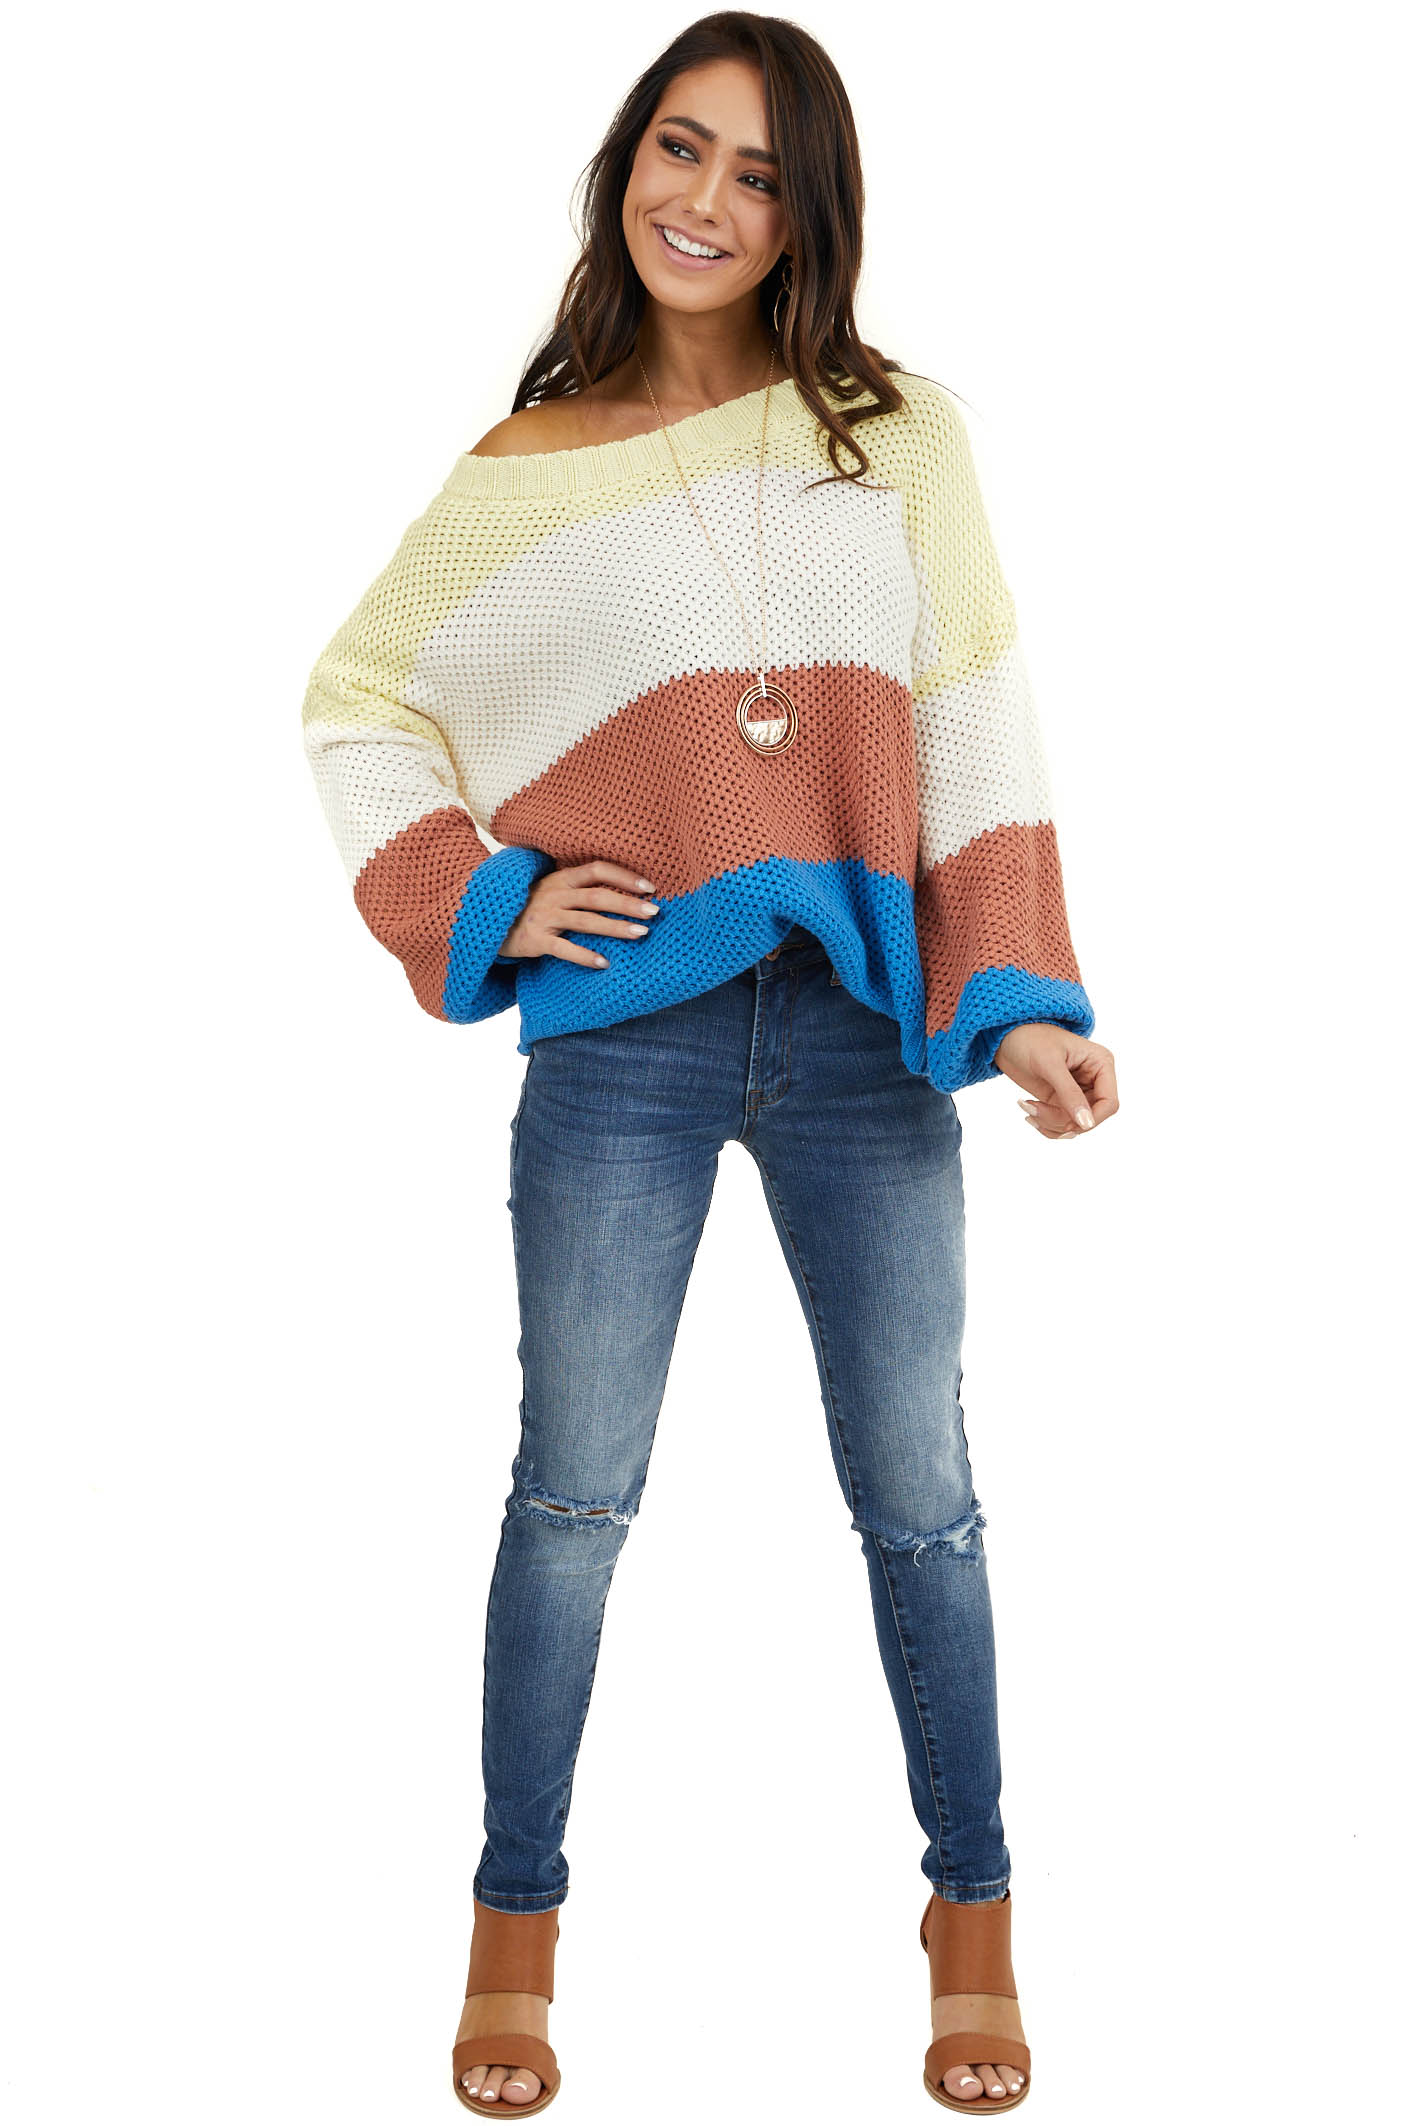 Lemon and Royal Blue Color Block Sweater with Bubble Sleeves